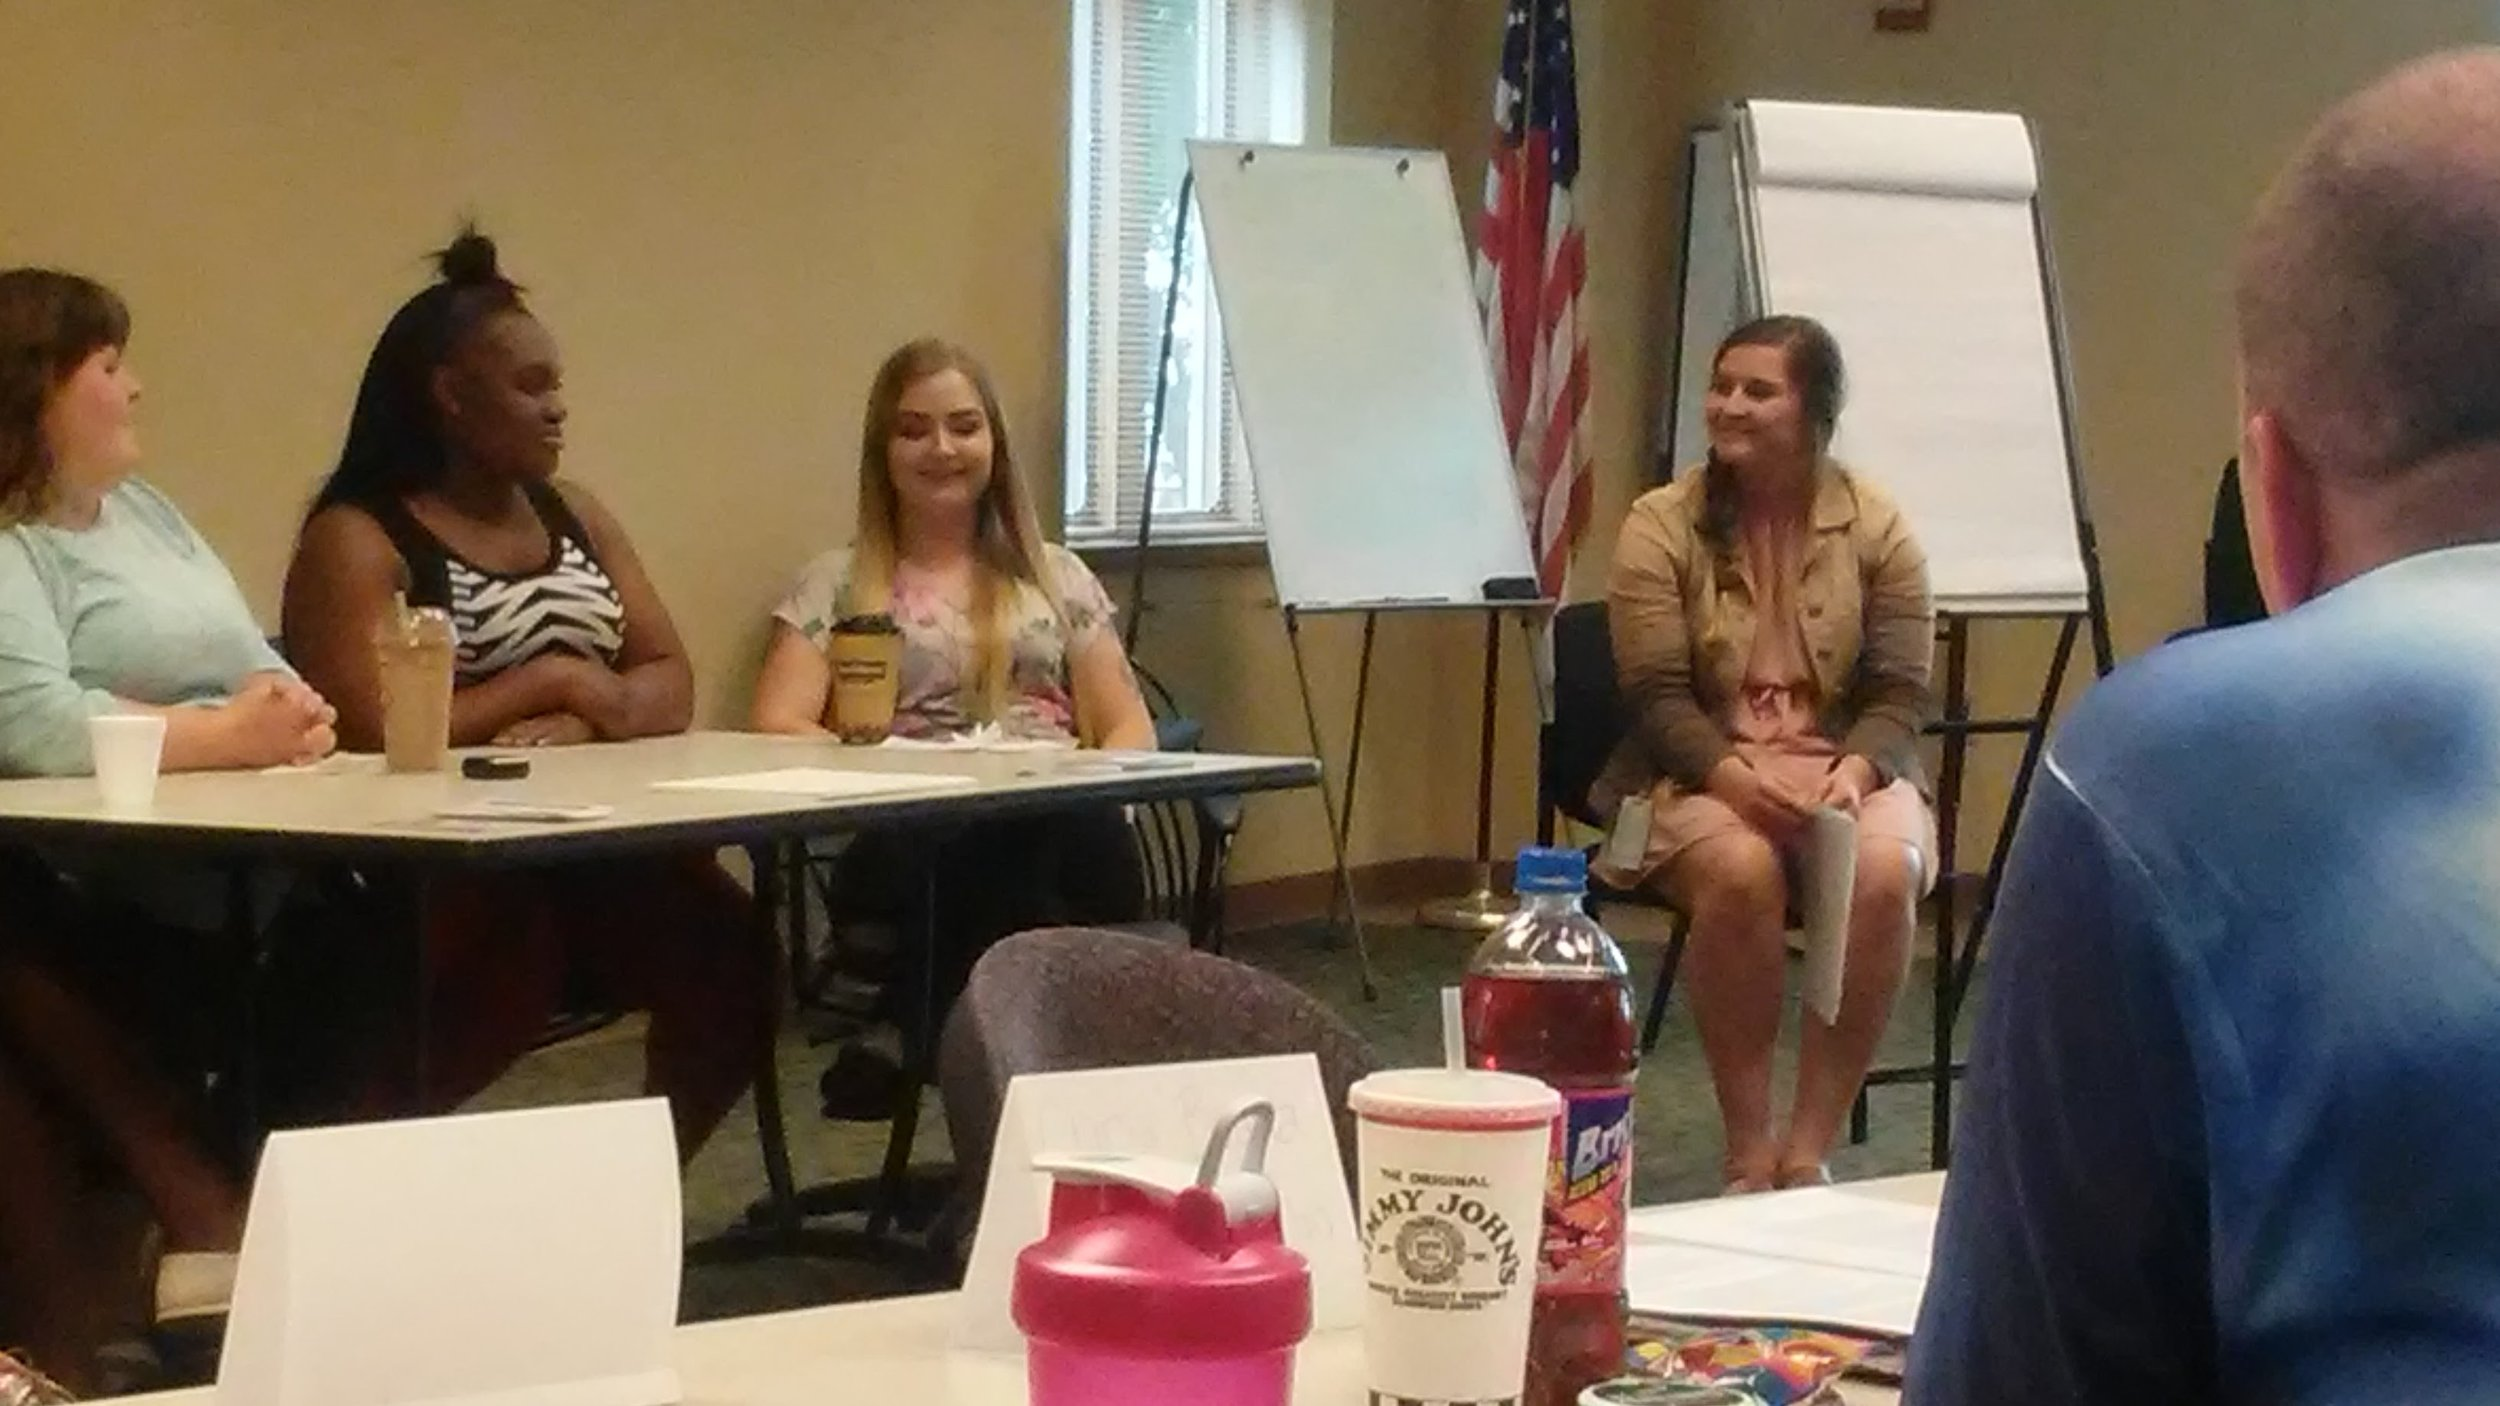 PARTNERSHIPS FOR PERMANENCE - LUTHERAN SOCIAL SERVICES TRAINING